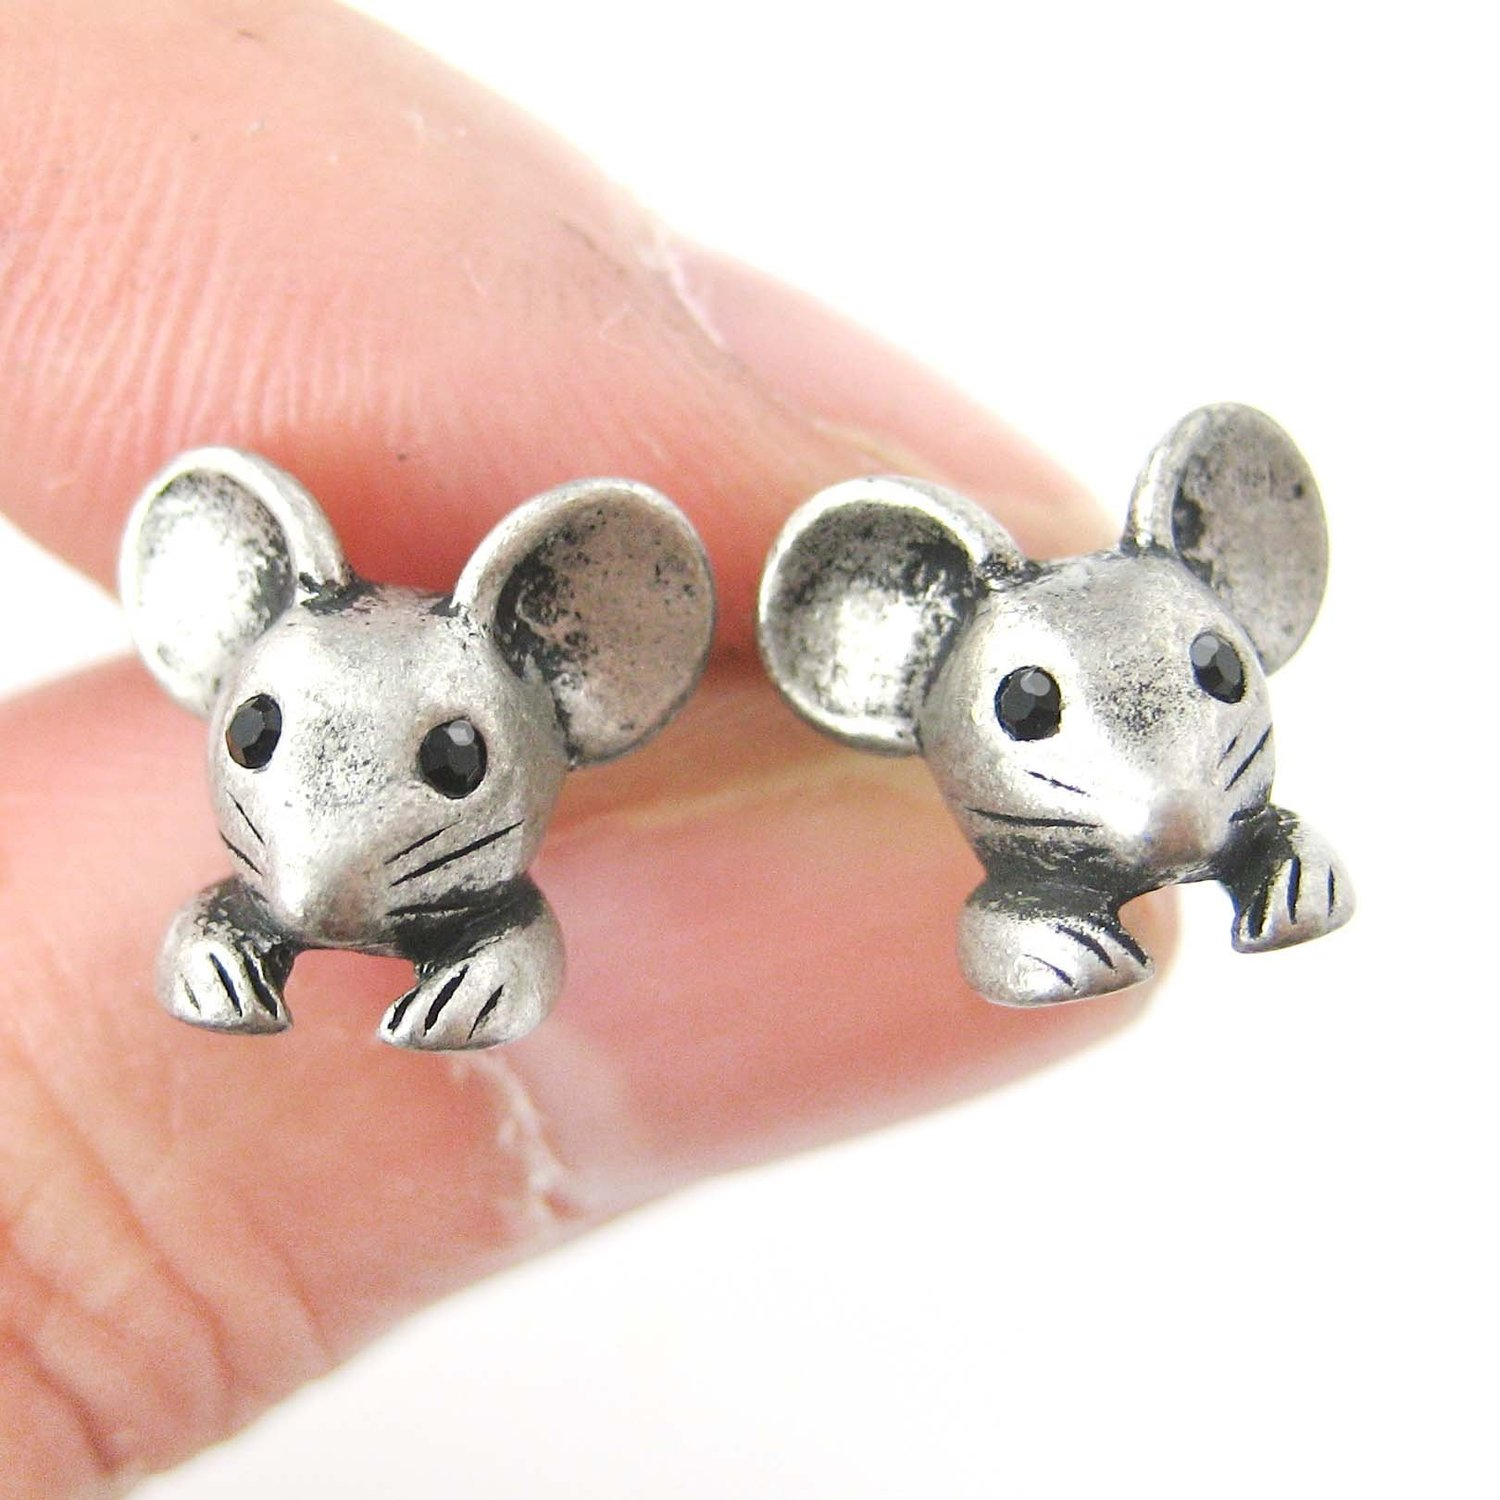 mouse-mice-realistic-animal-stud-earrings-in-silver-animal-jewelry-cute_f42da4c4-41a8-450c-a16a-9e1ee0dcc630_1500x.jpg